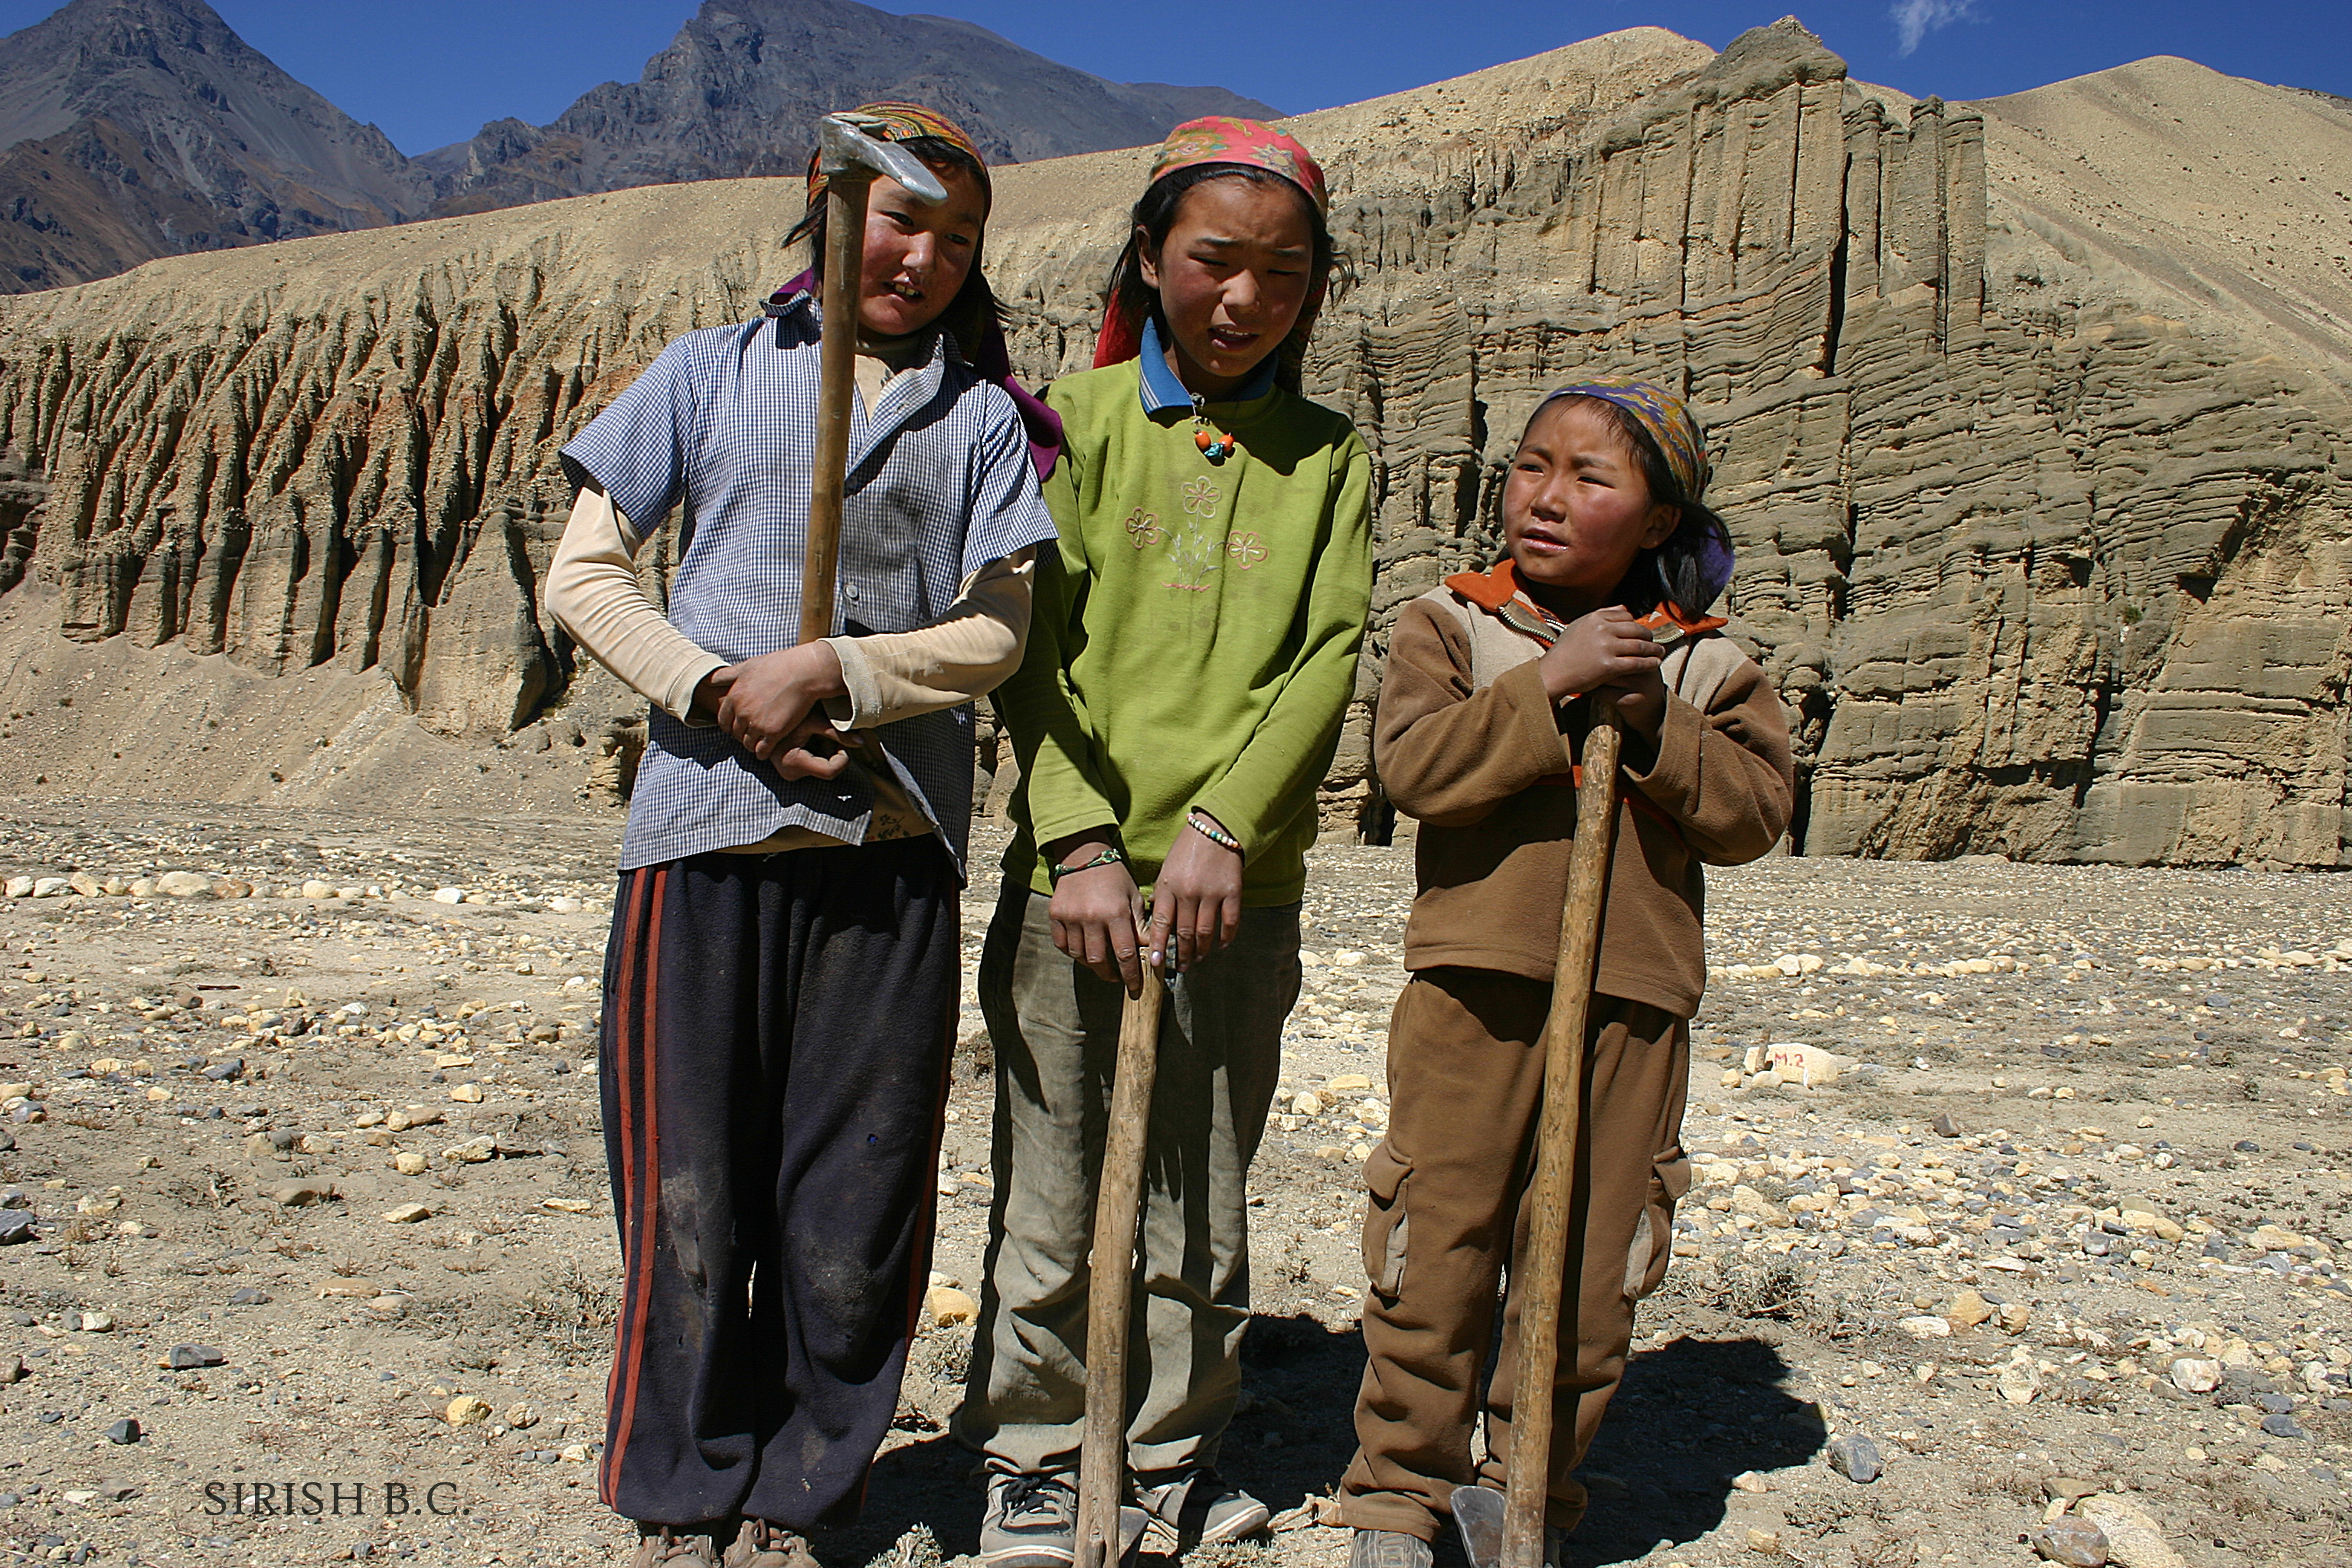 ©The Fuel Collectors. Photograph by Sirish B.C. in Upper Mustang, Nepal @ https://photographyworld.org/travel/the-himalayas-sagarmatha-mount-everest/